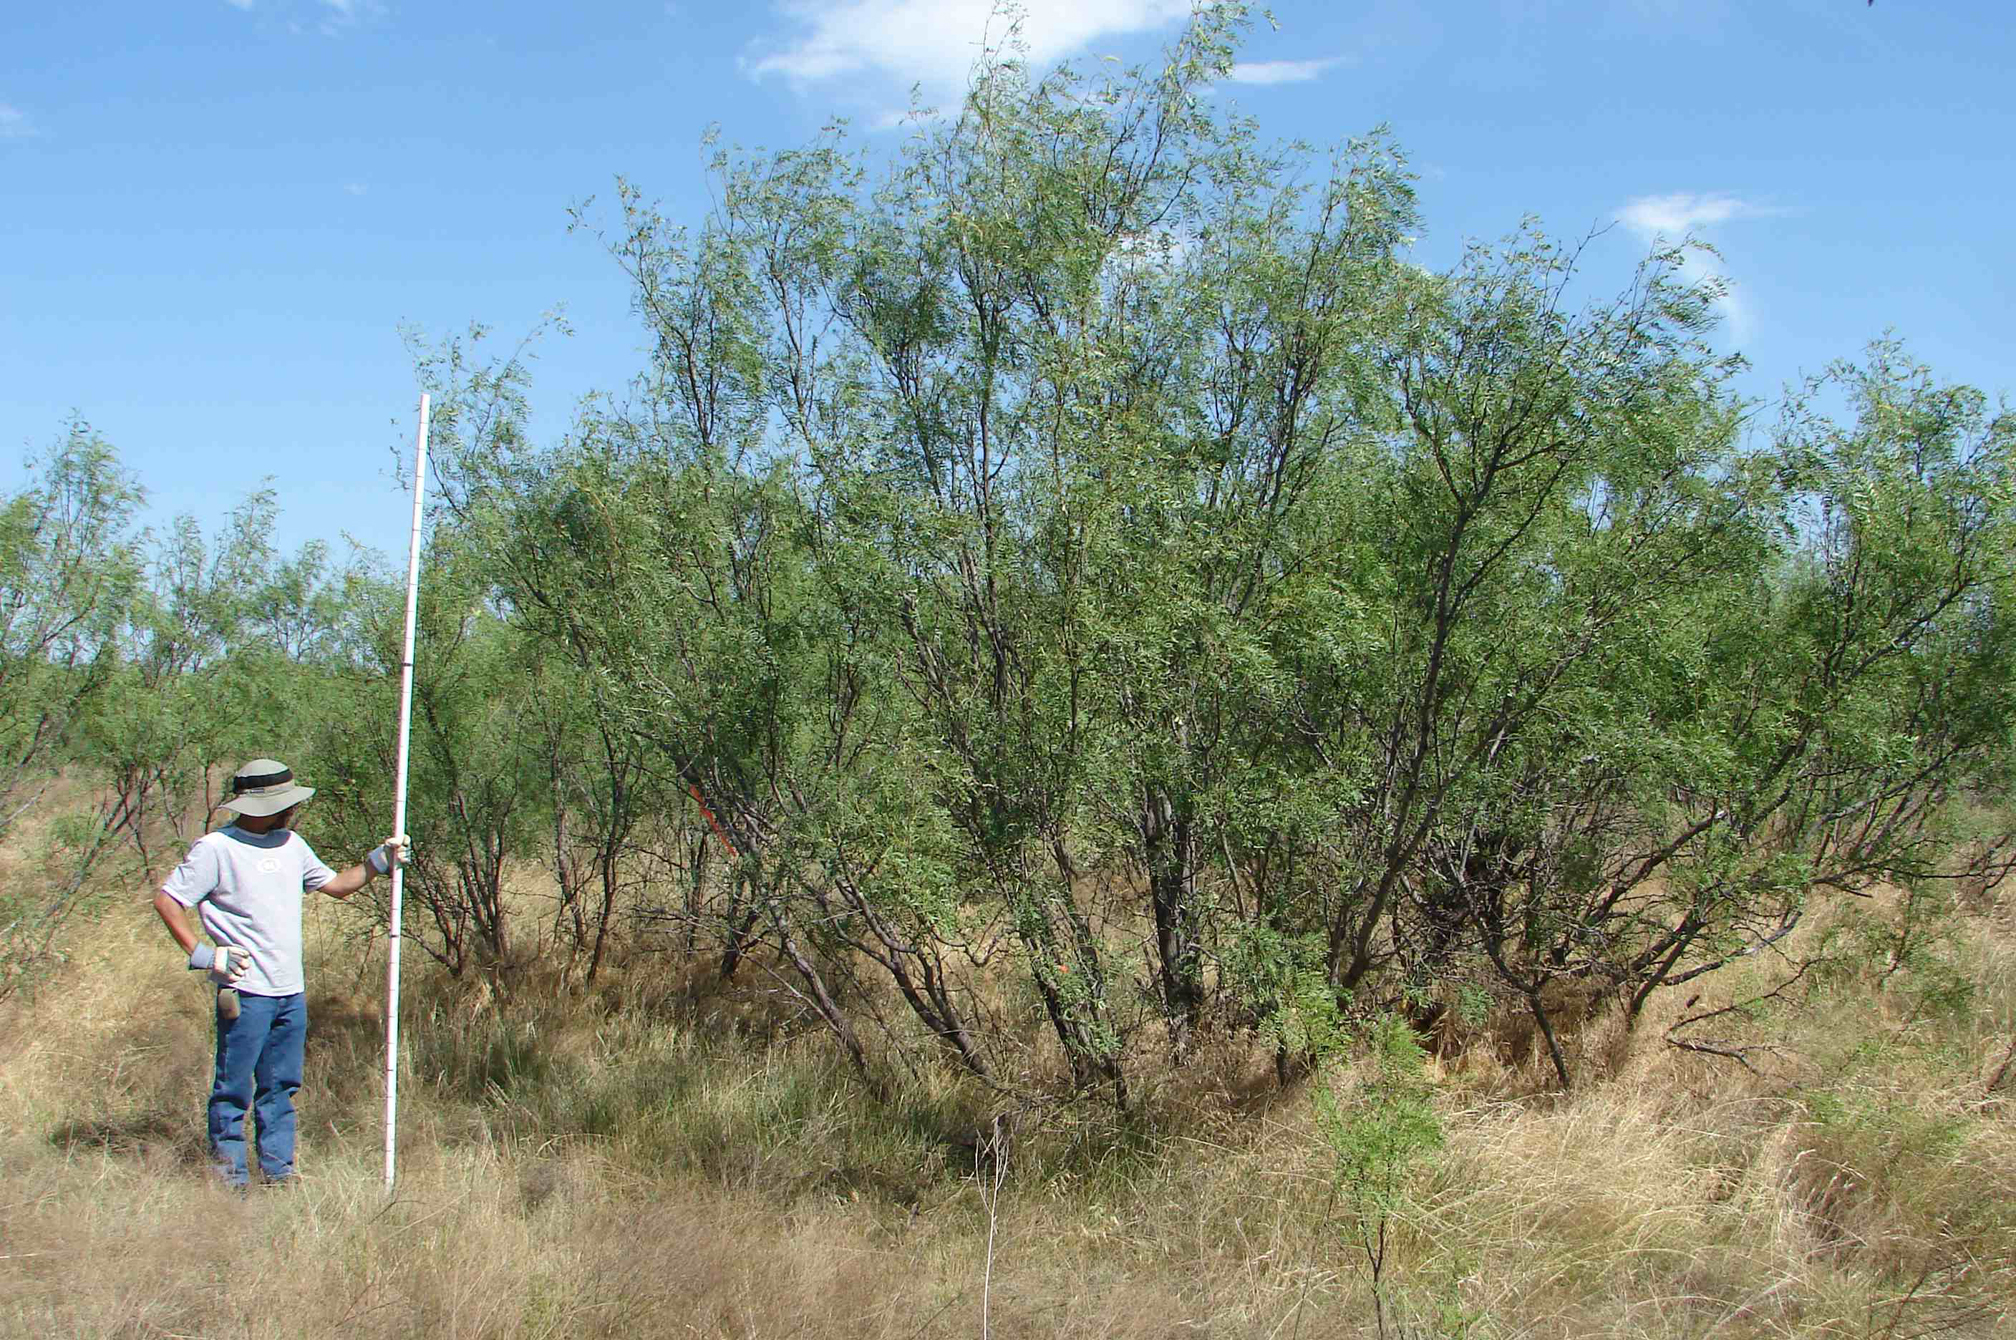 Man in white tshirt and hat holds large pole next to mesquite tree.